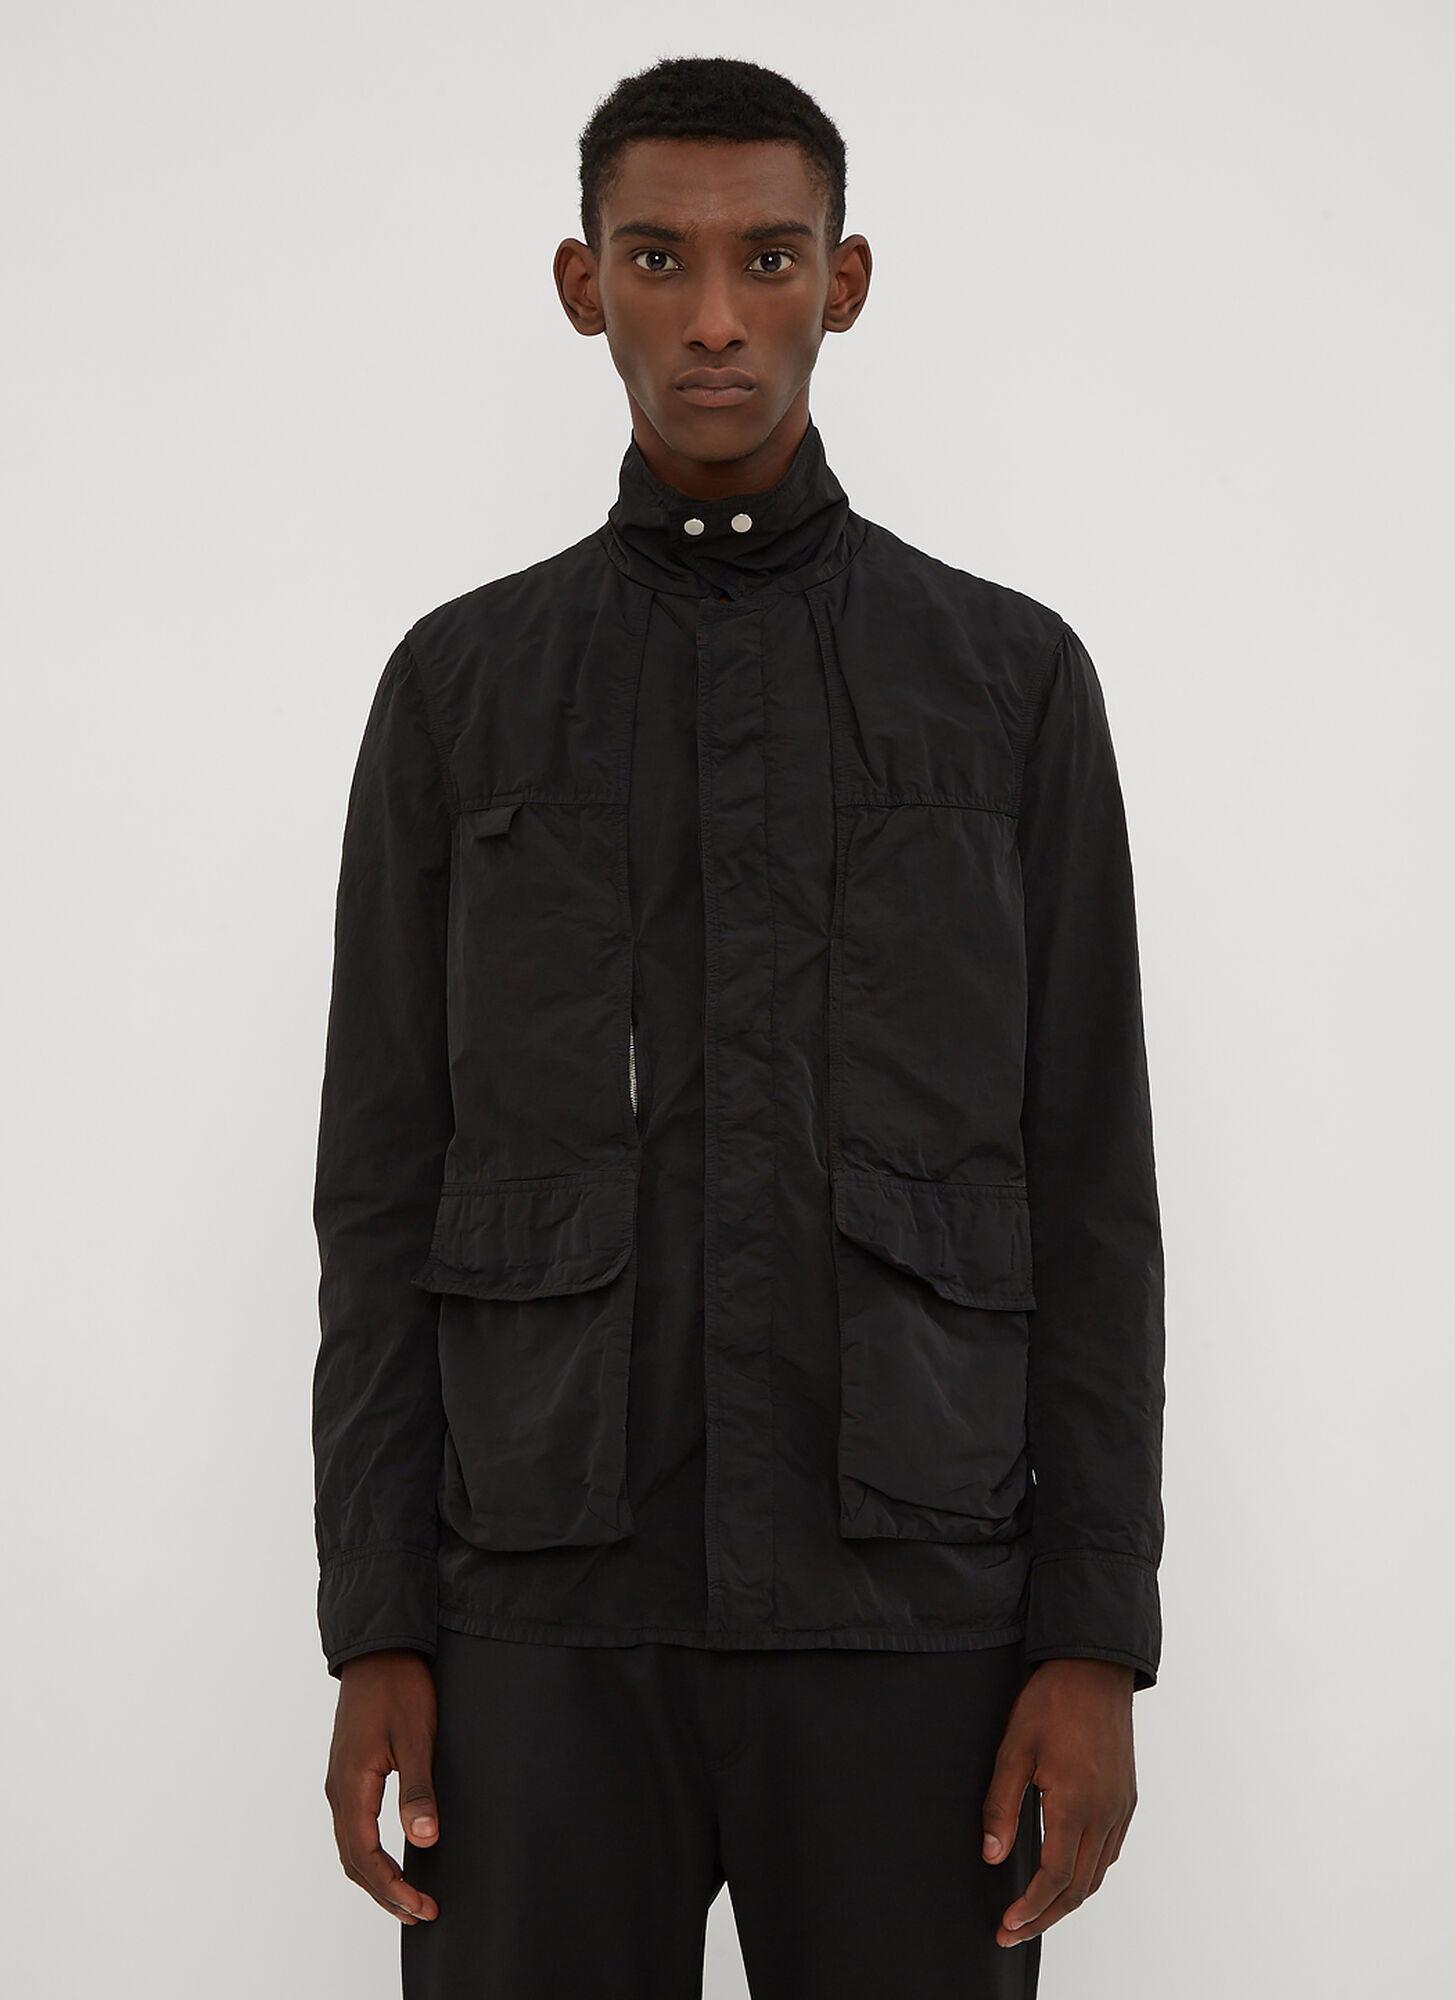 1017 ALYX 9SM Technical Panel Pocket Jacket in Black size EU - 46